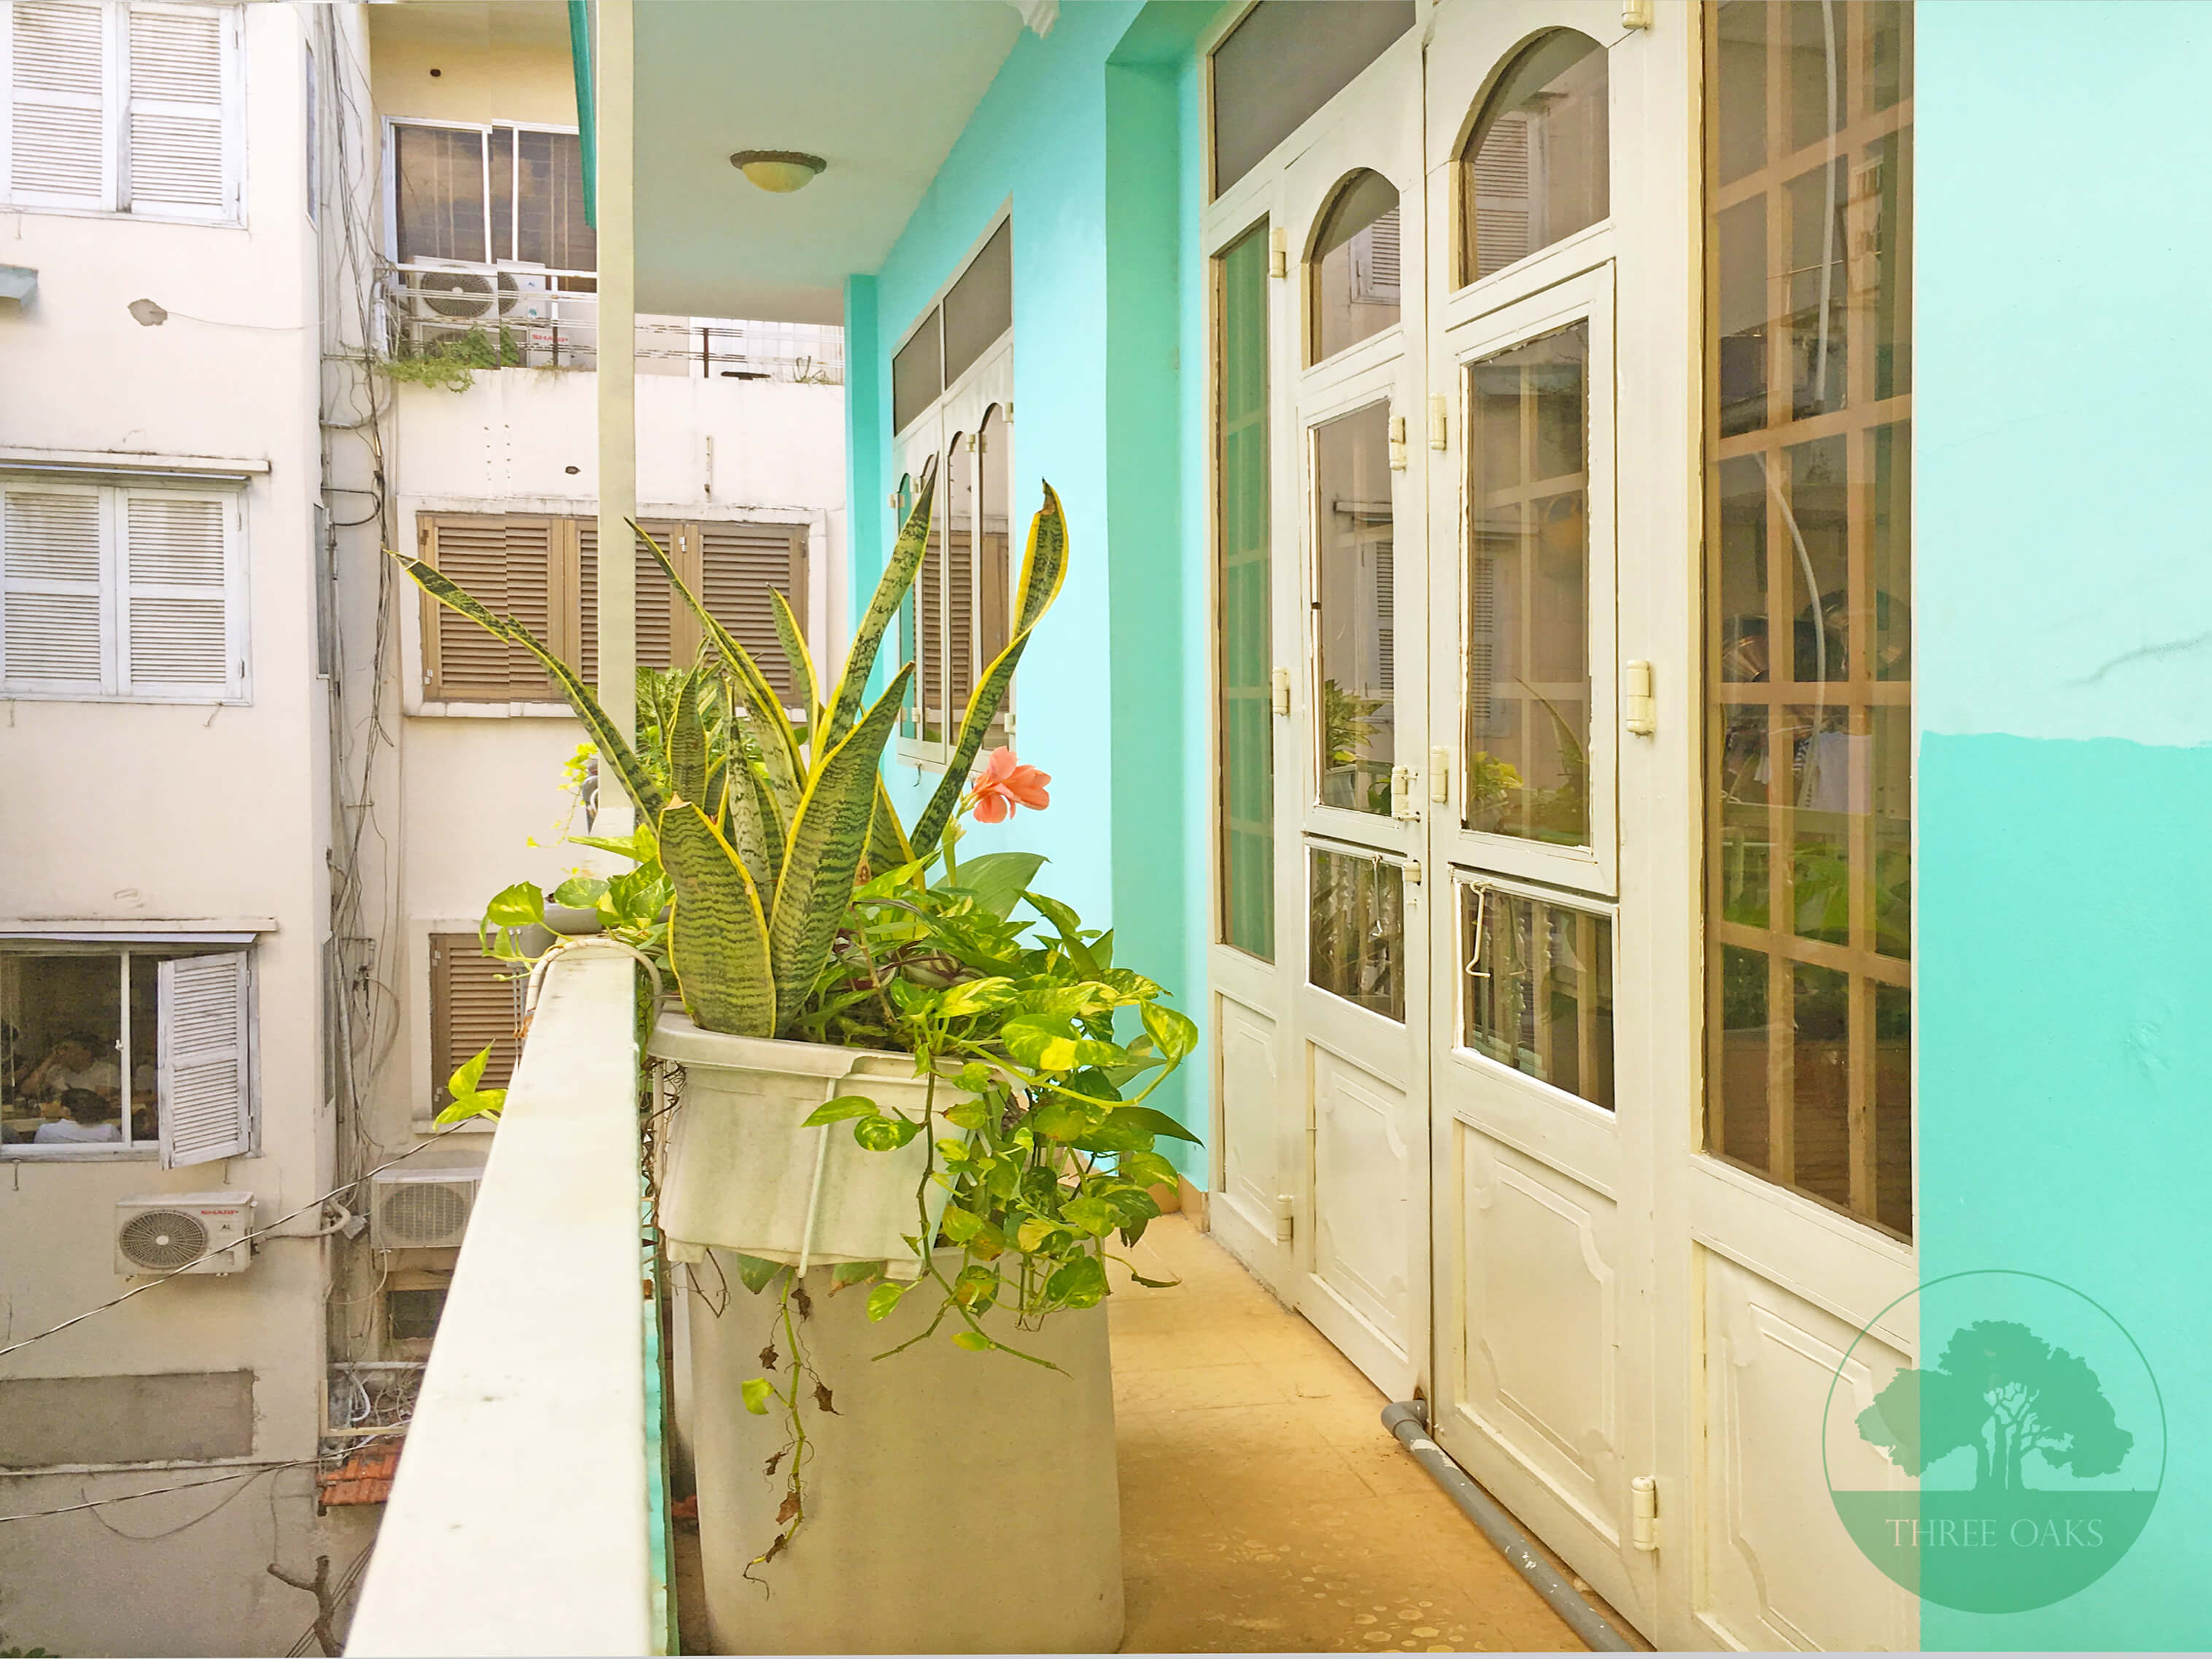 studios-and-apartments-for-rent-in-Ho-Chi-Minh-in-District-1-tybe-a-3